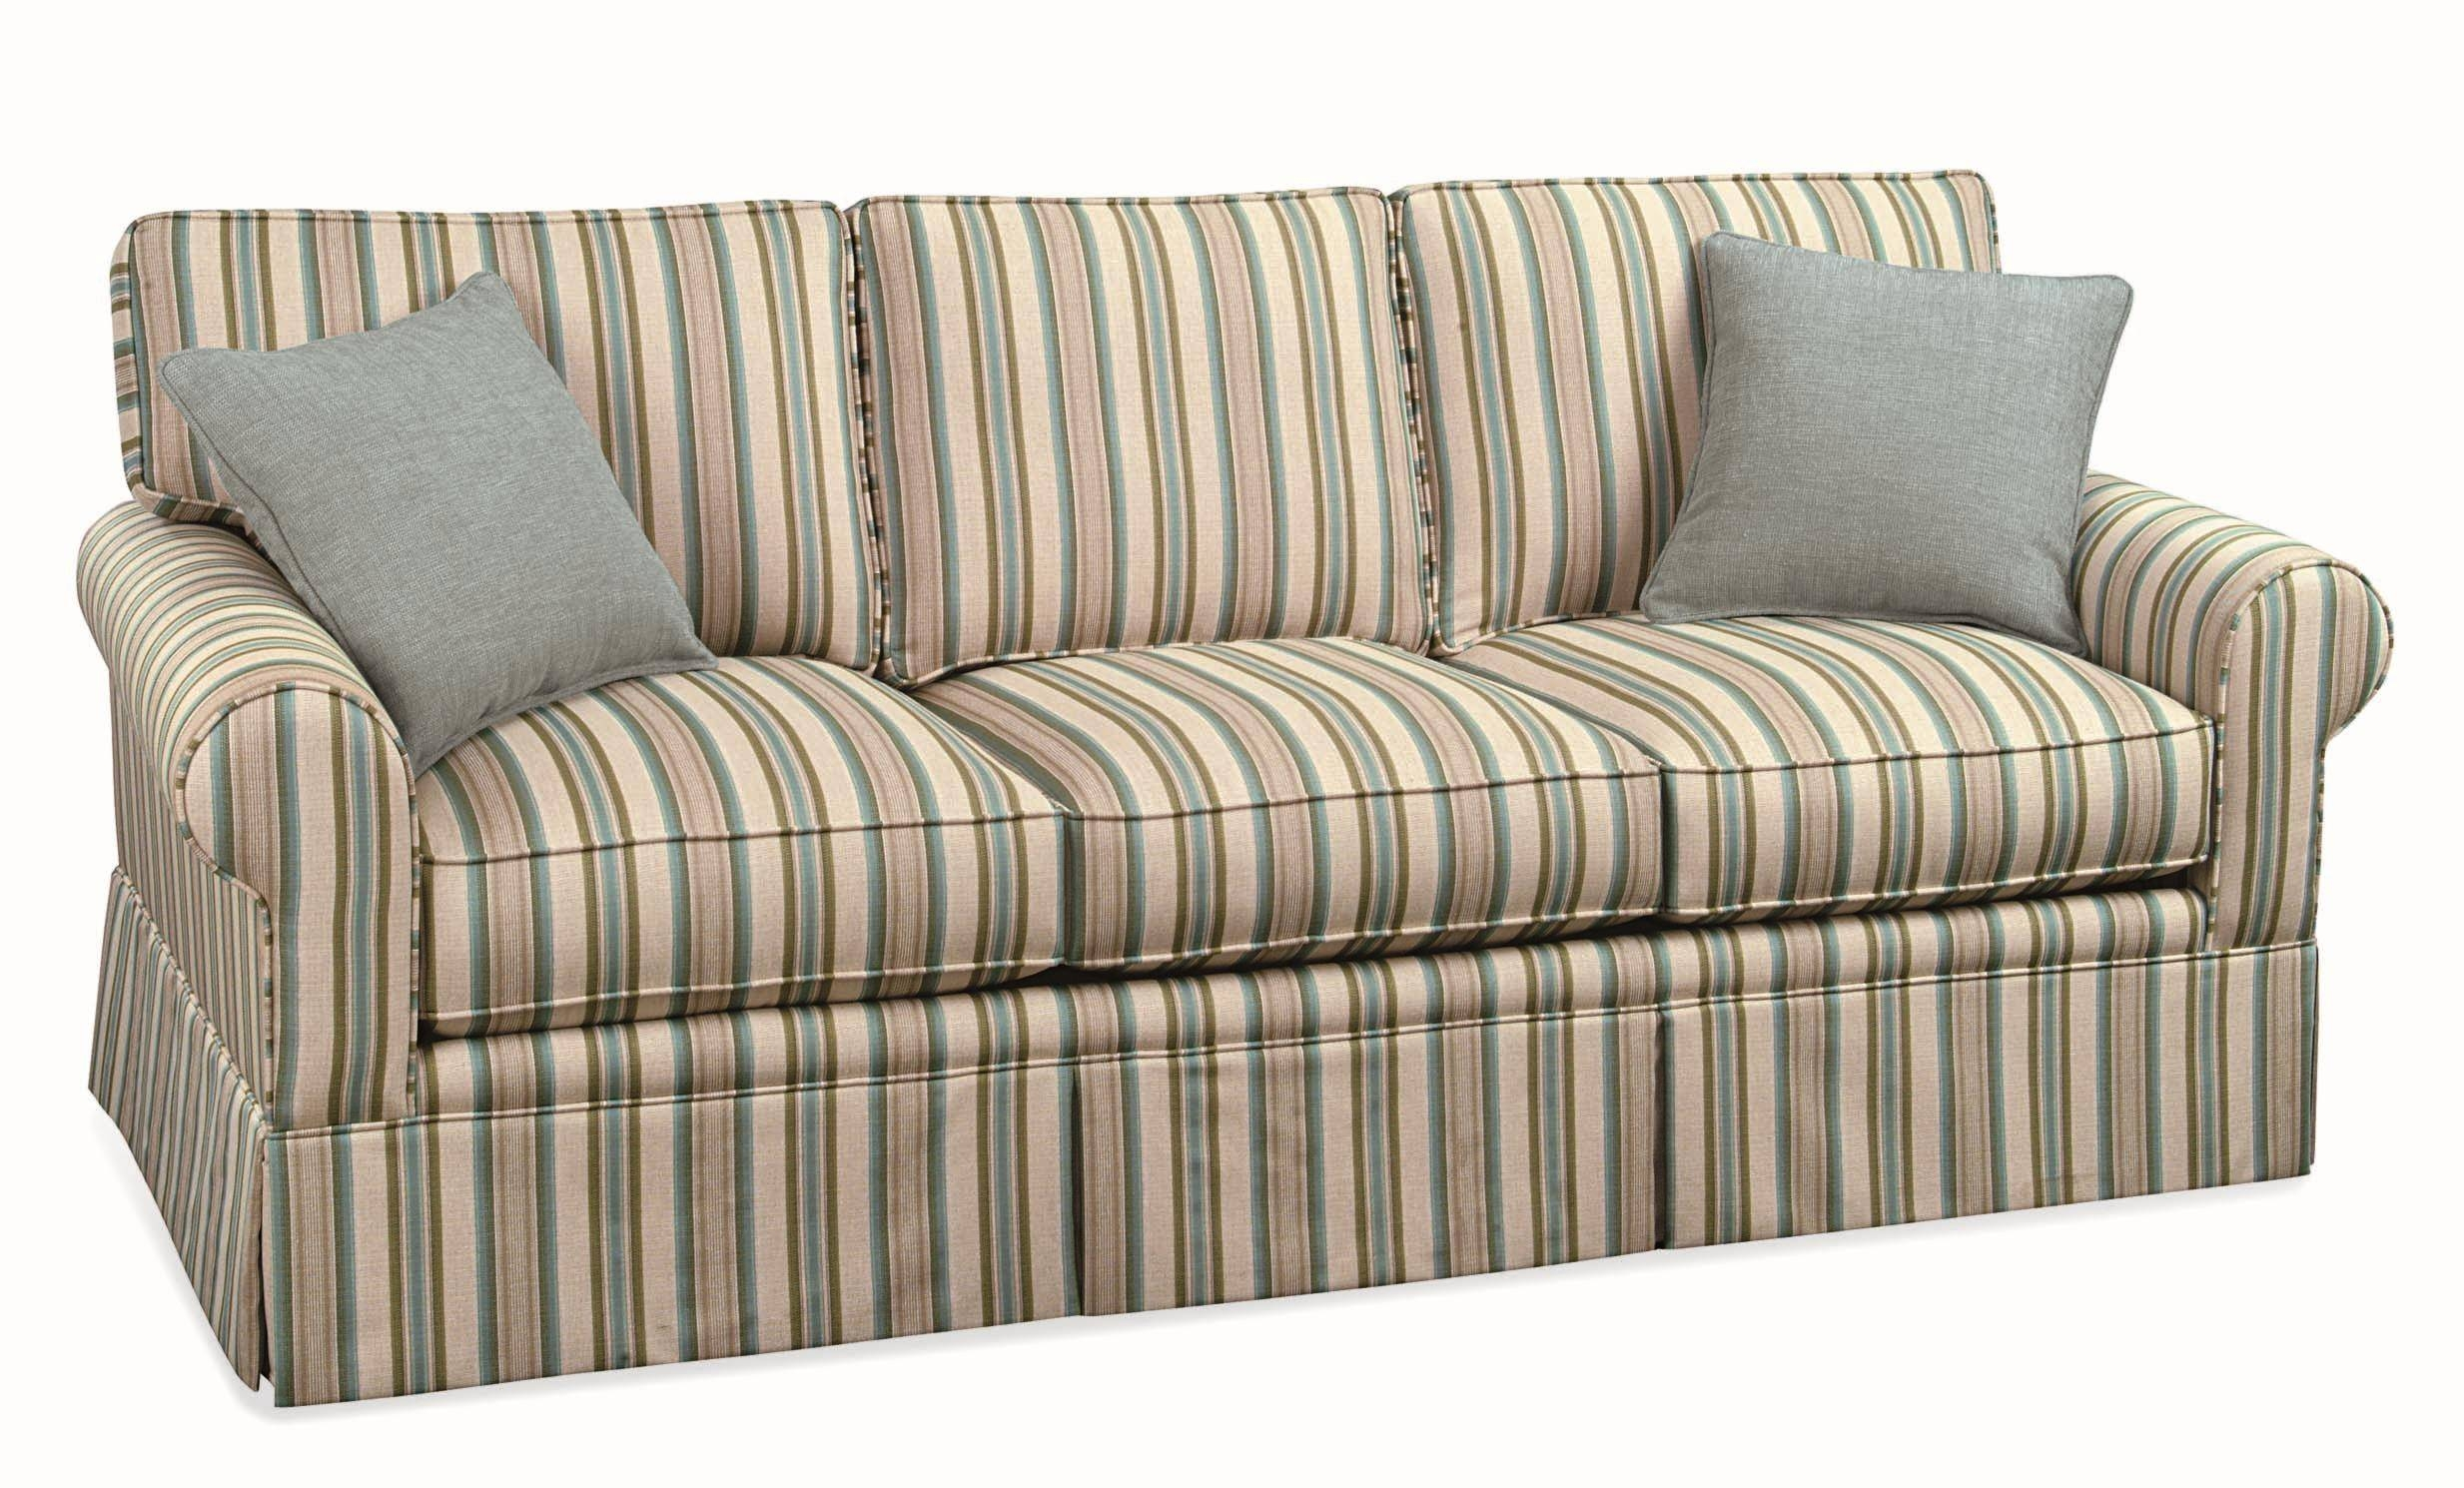 Braxton Culler Benton Casual Three Seater Sofa With Rolled Arms inside Braxton Culler Sofas (Image 3 of 15)